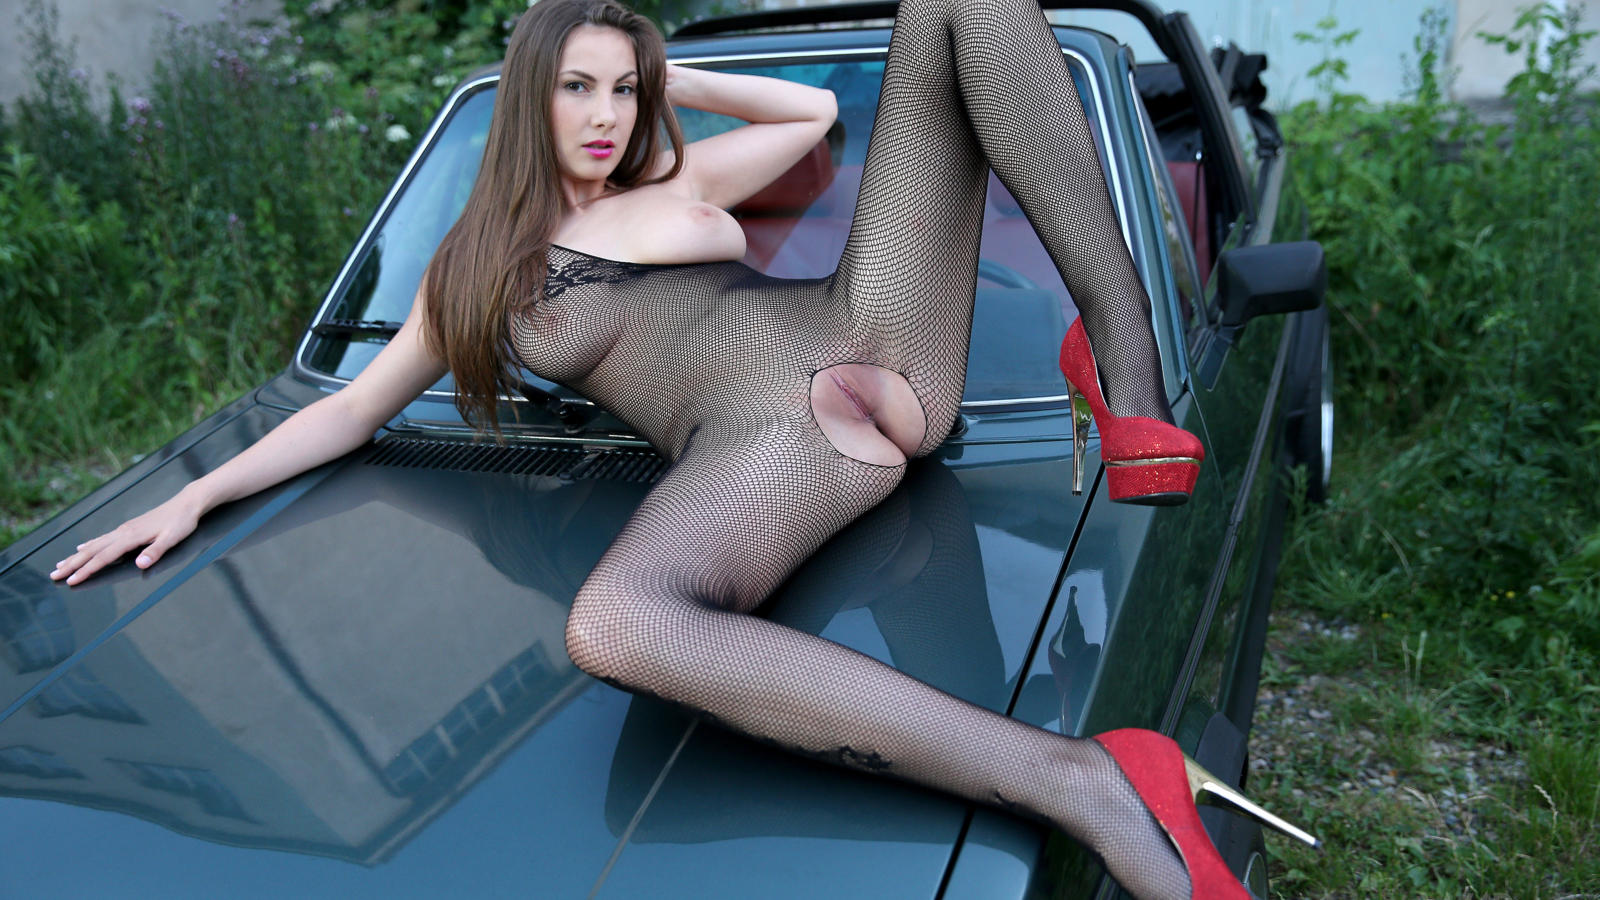 anna kolarova, conny carter, josephine, model, brunette, tits, legs, pussy, labia, sexy, hot, car, naked, conny, connie carter